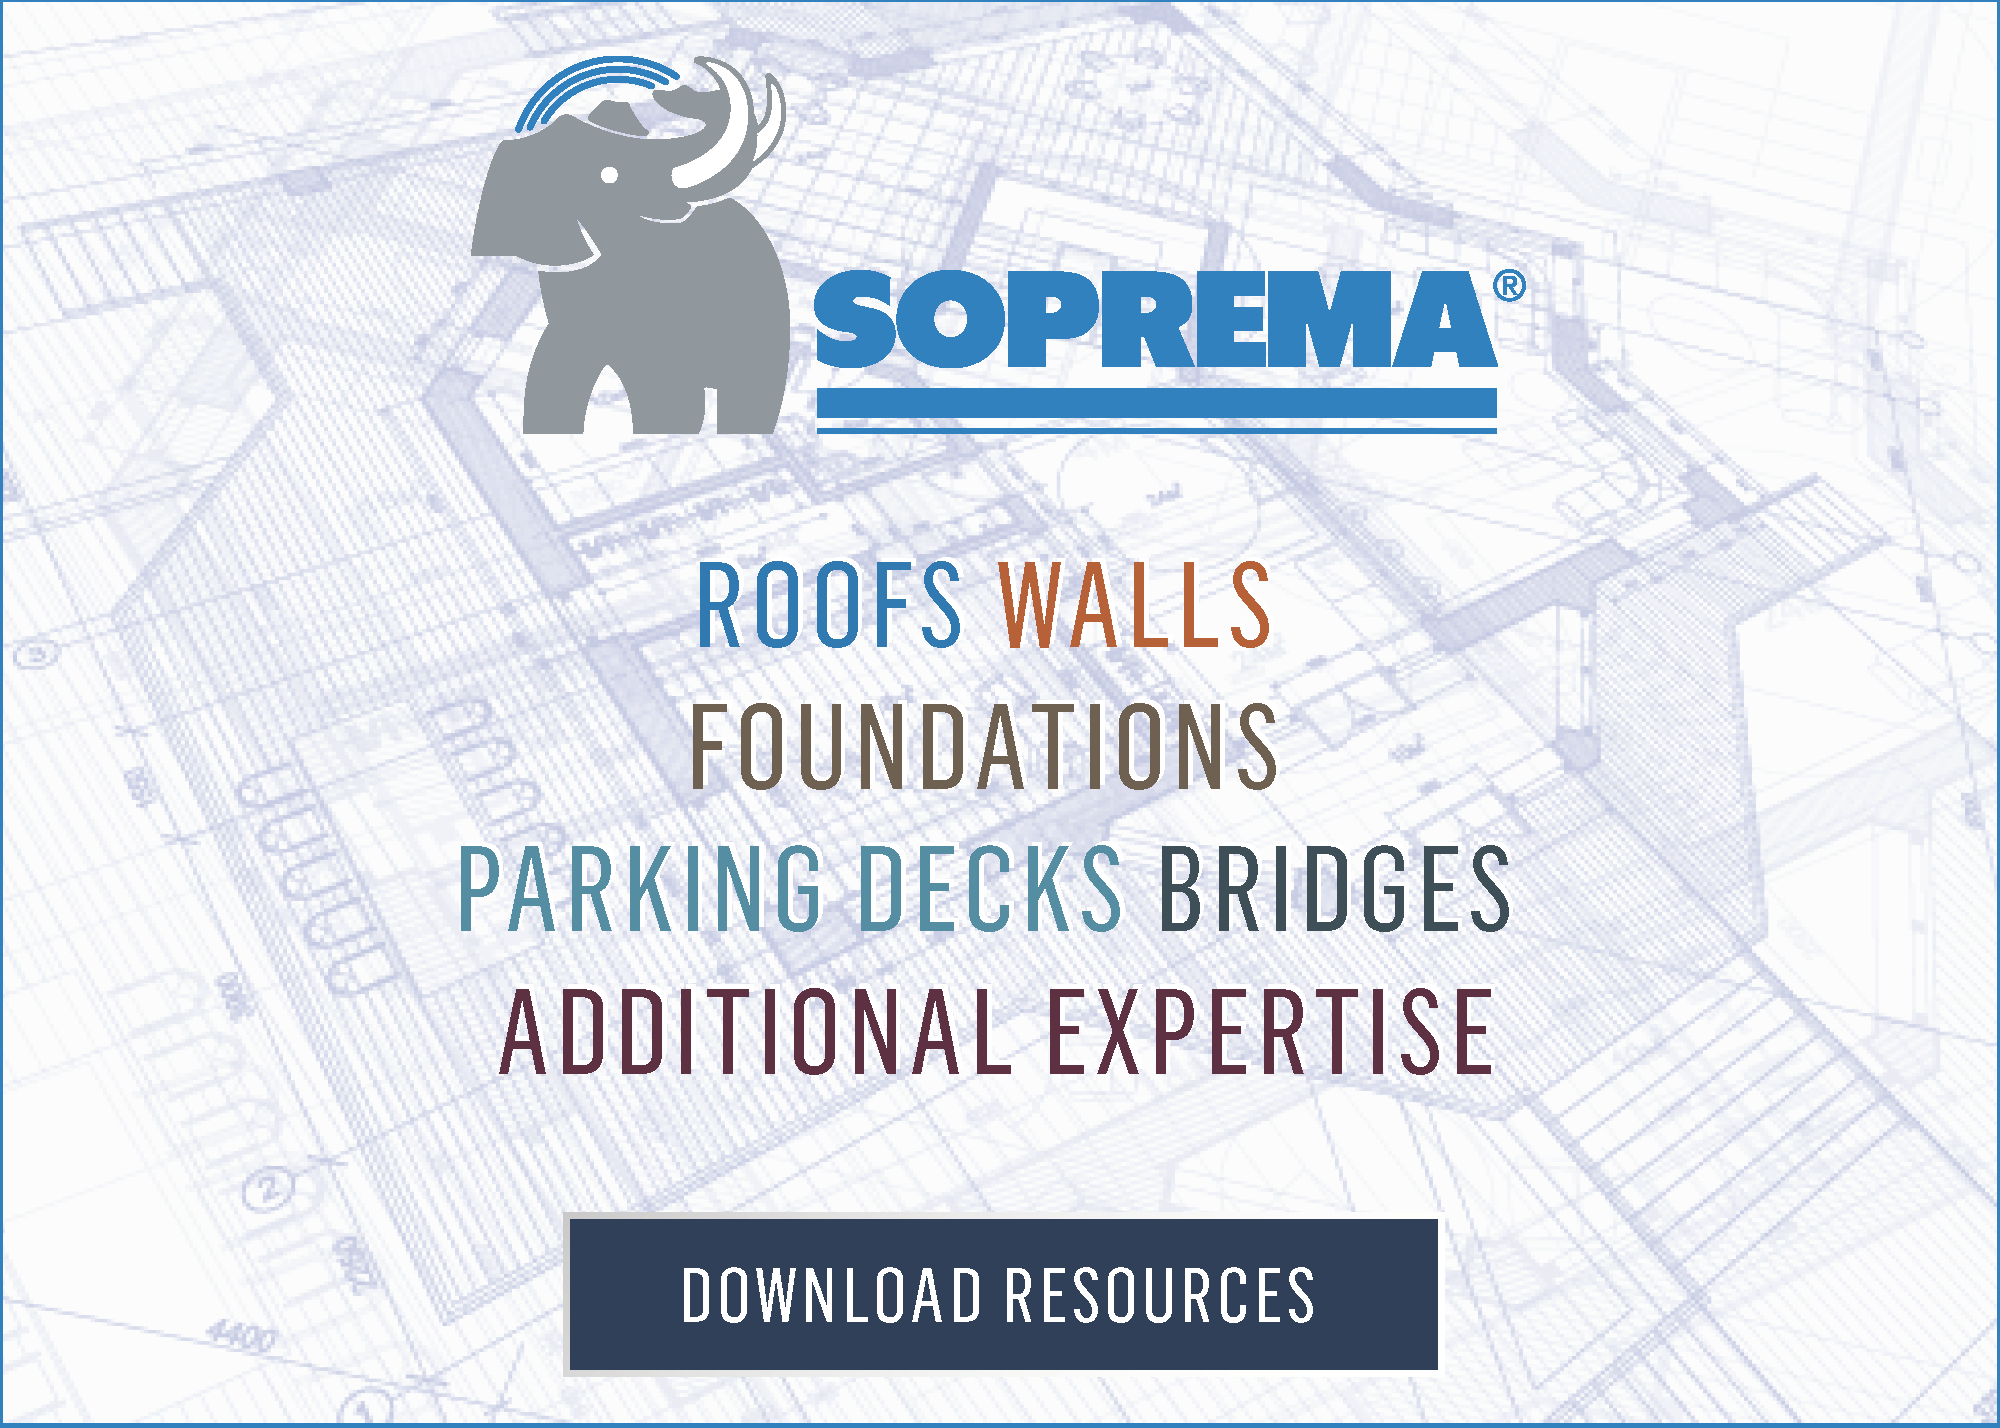 SOPREMA - Navigational Ad - SOPREMA is Your Resource